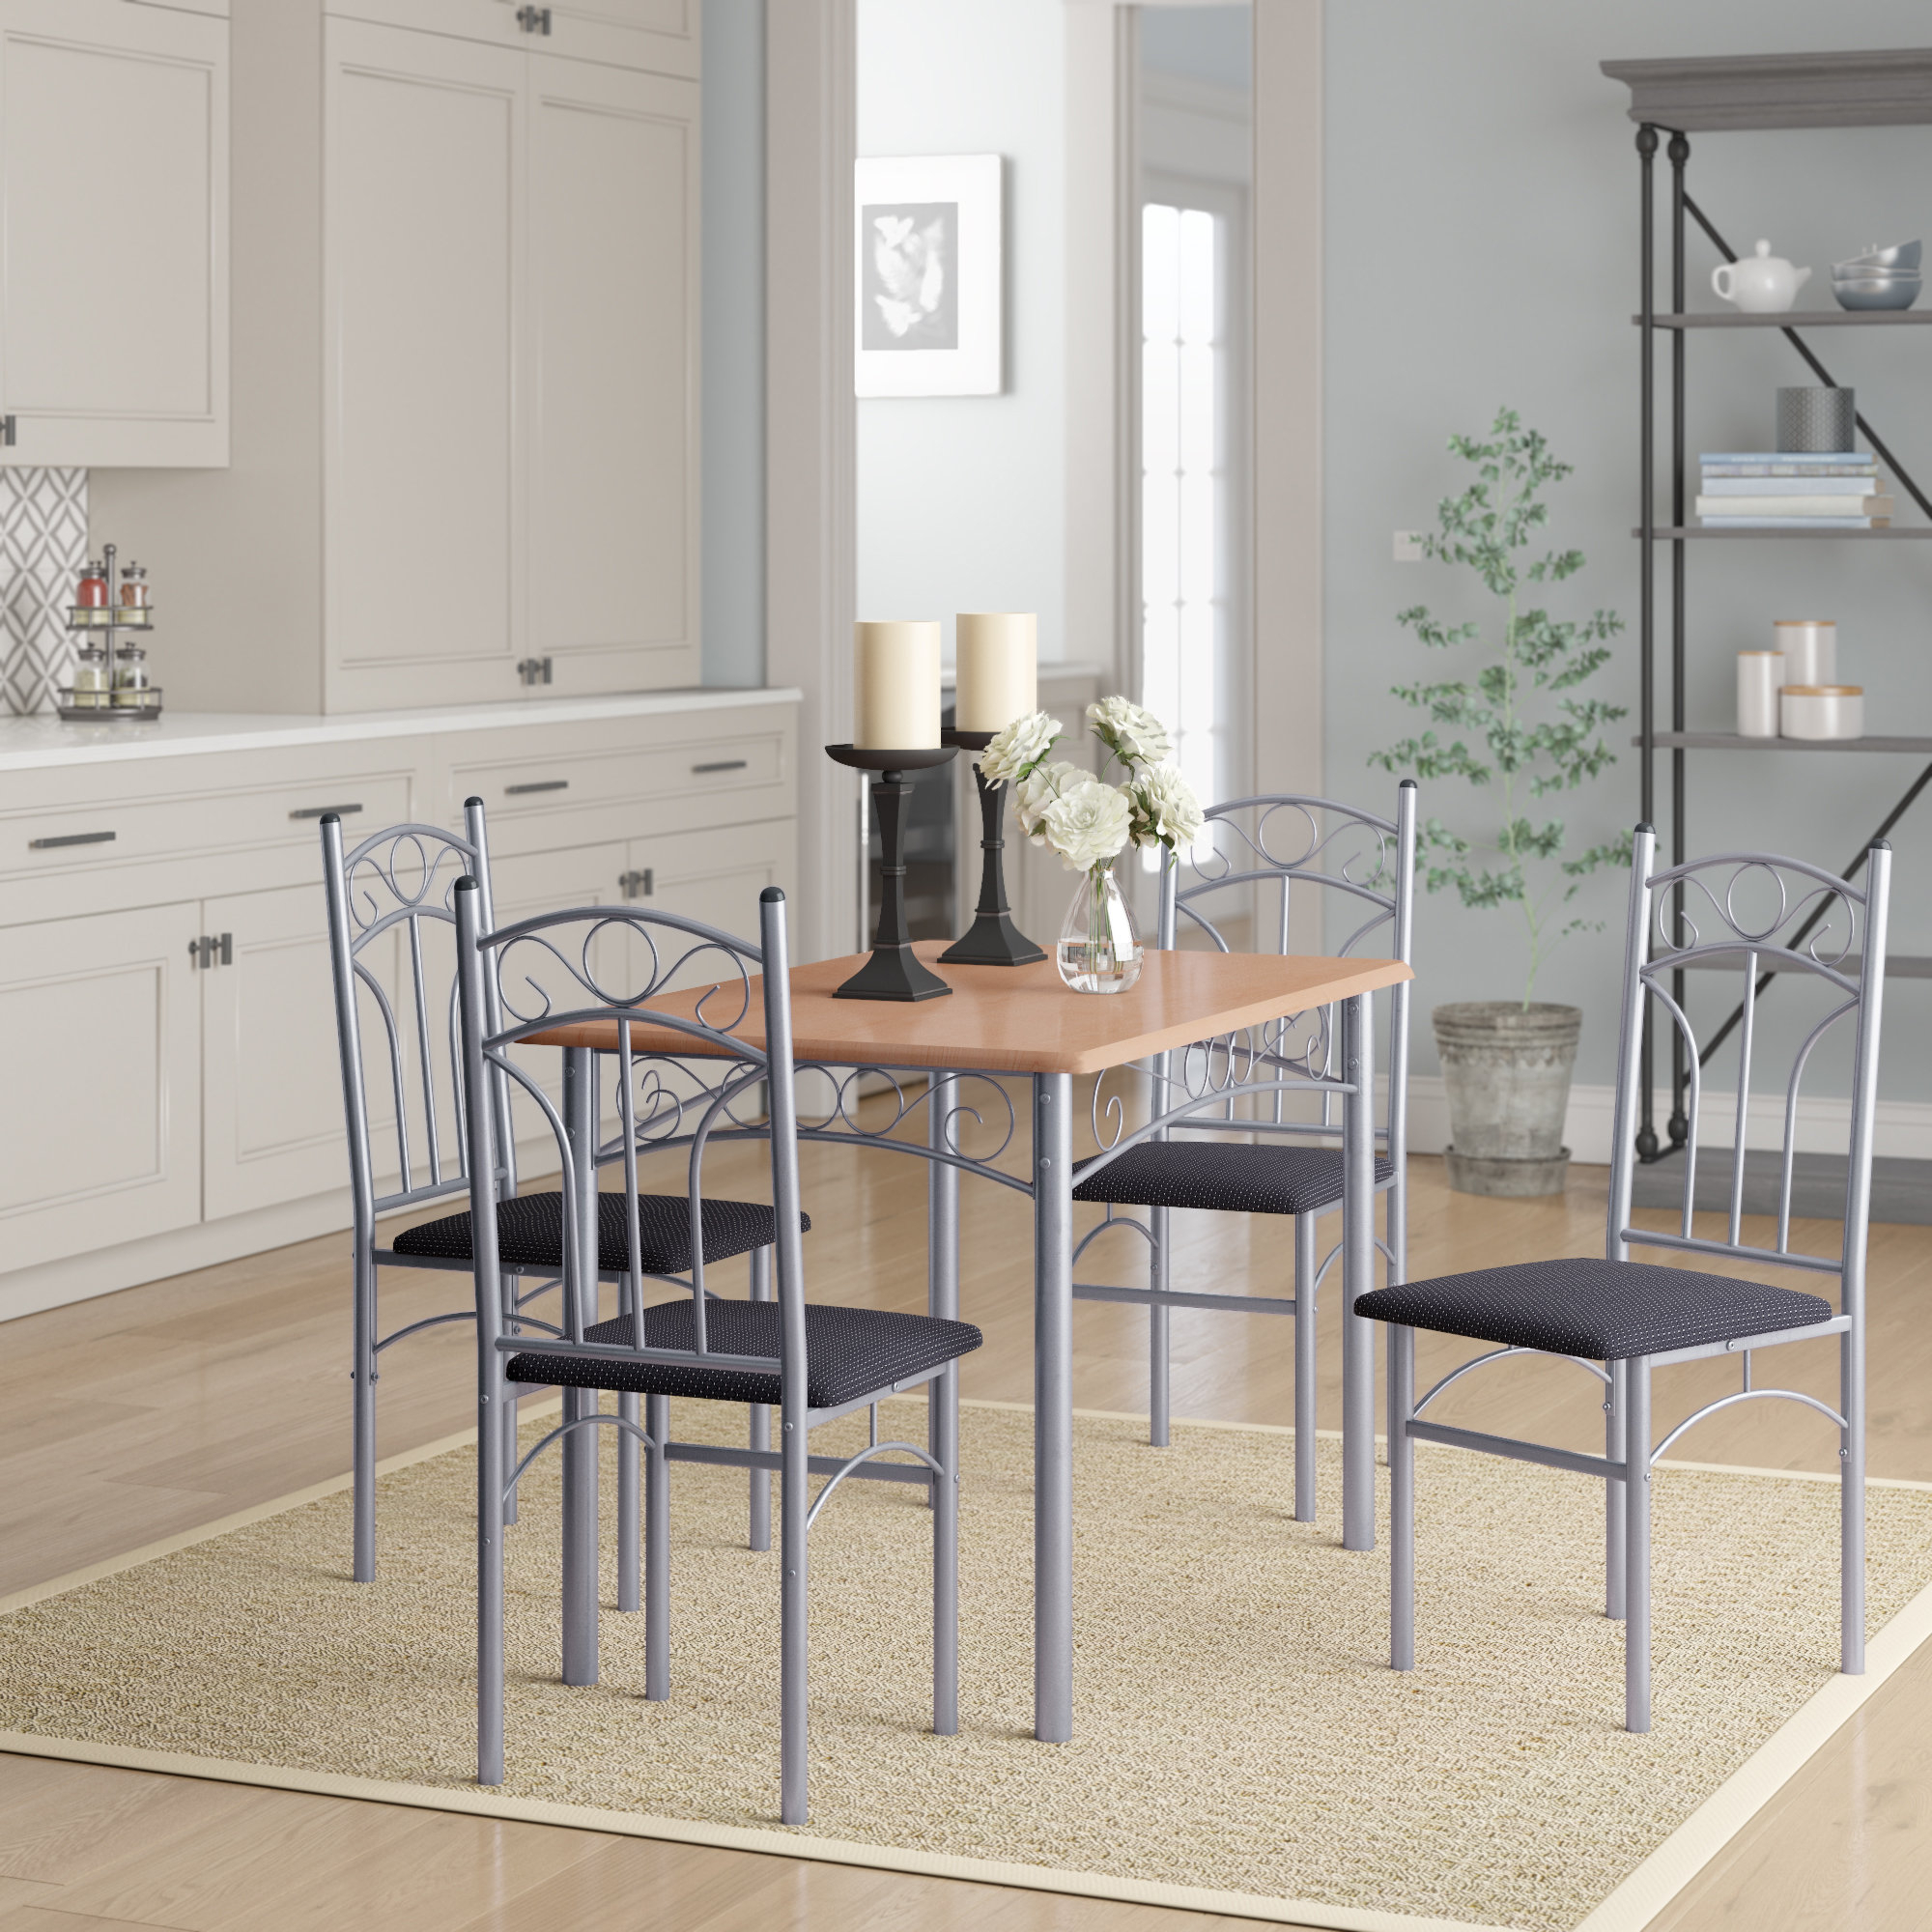 Details About Winston Porter Opalstone 5 Piece Dining Set Within Most Popular Taulbee 5 Piece Dining Sets (View 8 of 20)